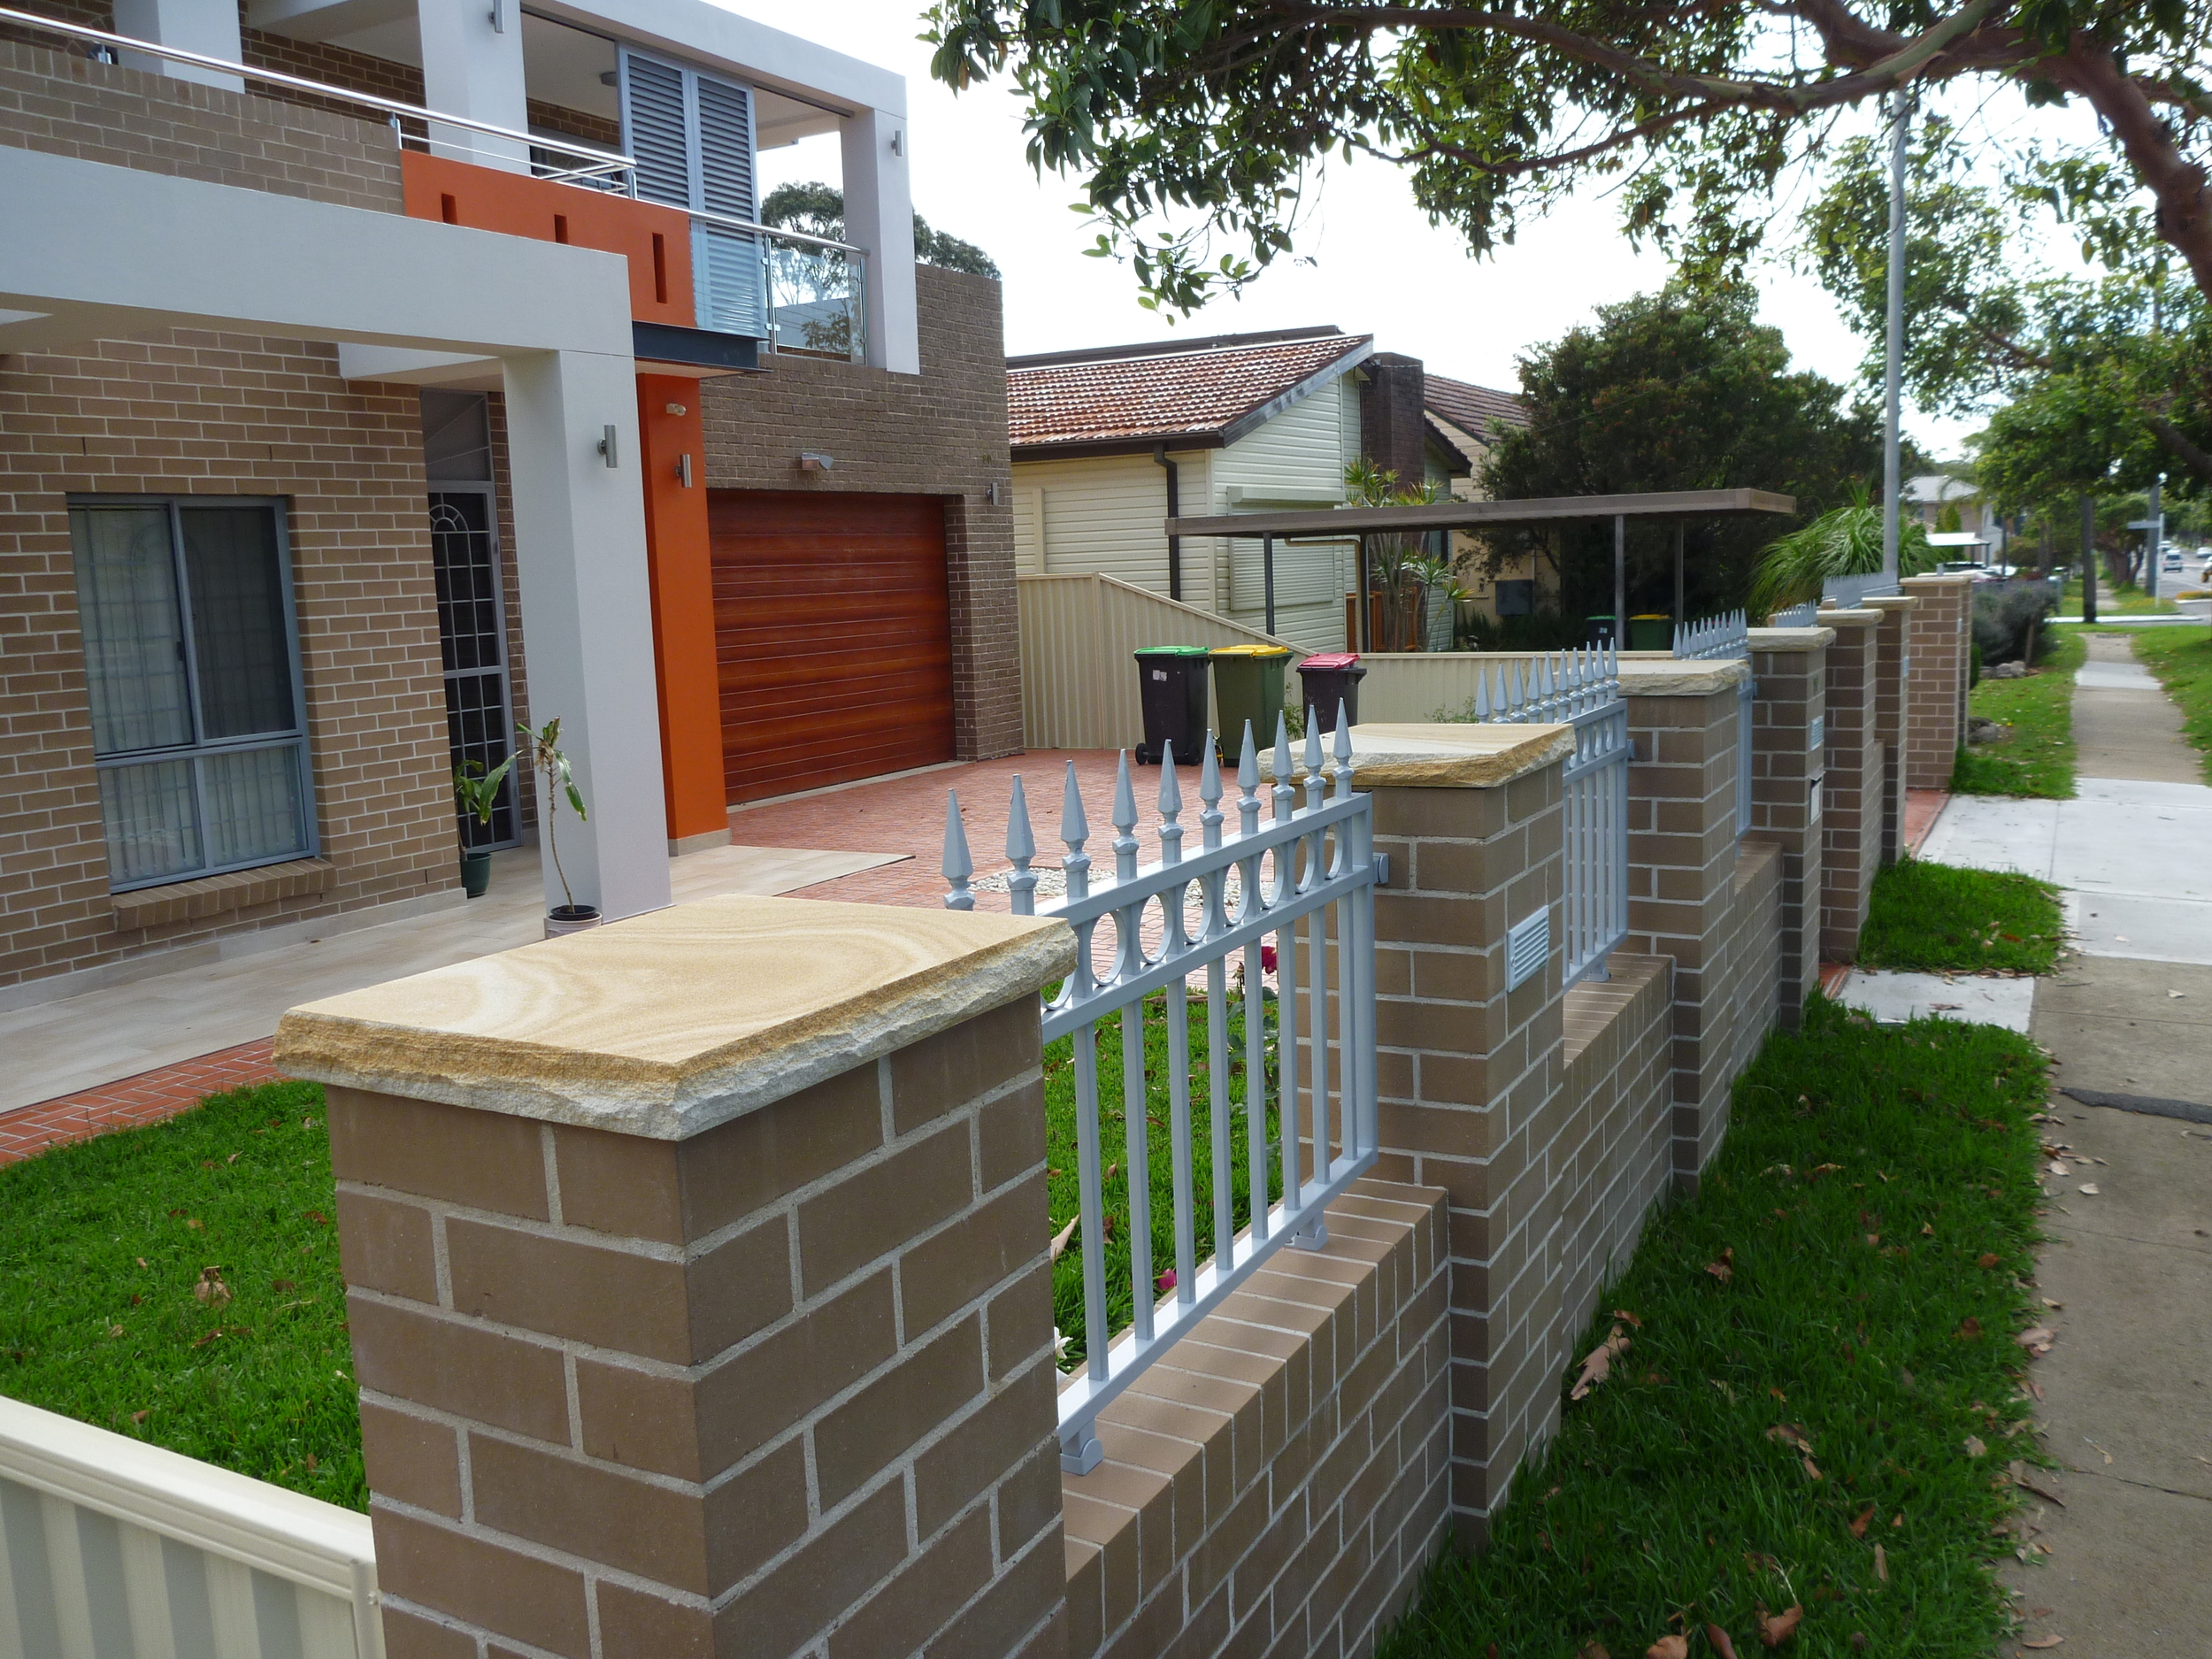 18. Australian Sandstone pier cupping 50mm thick (4)